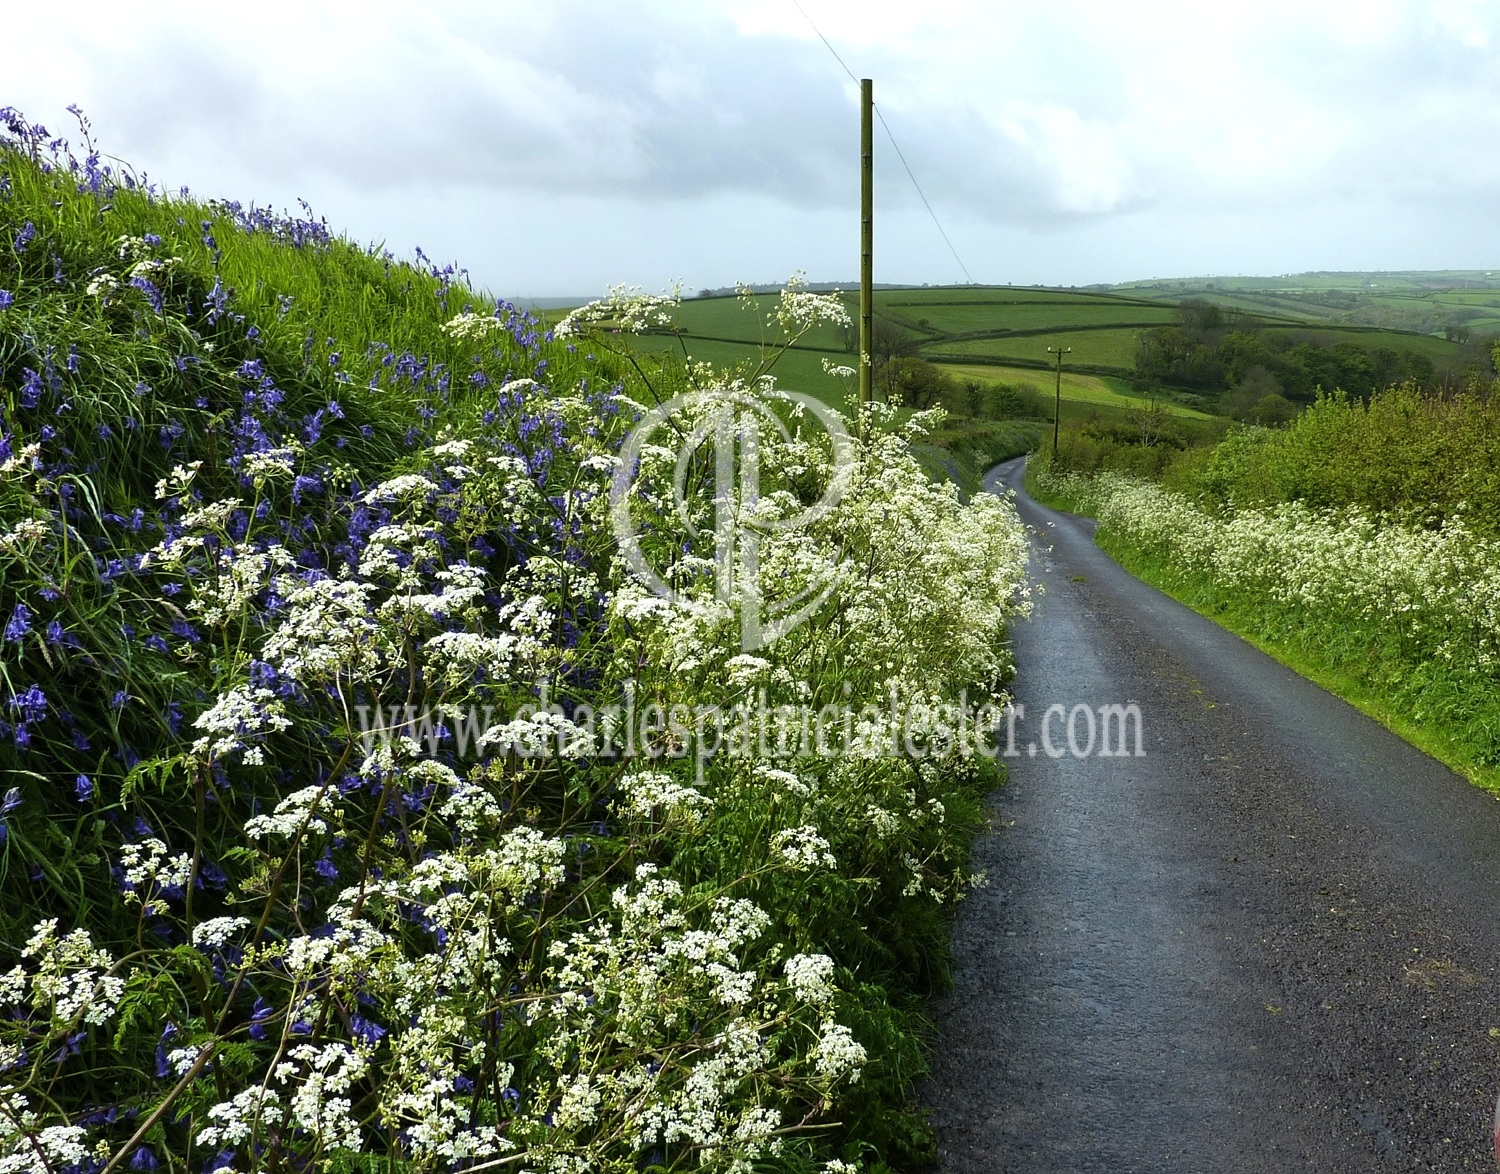 Flower filled lanes to inspire the giant of verse - Dylan Thomas